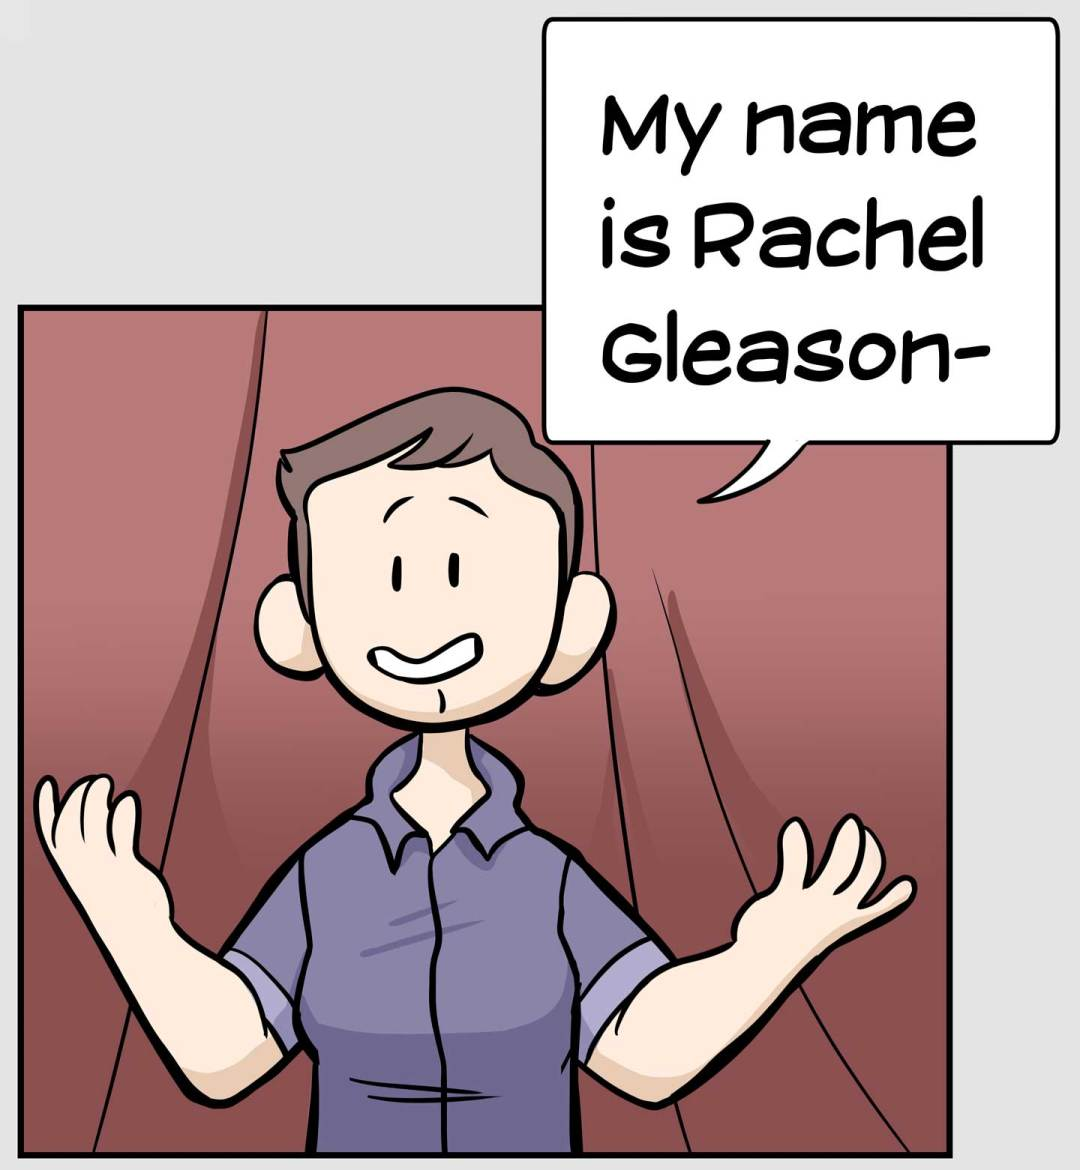 My name is Rachel Gleason and who I am today as a person and artist all goes back to my past.